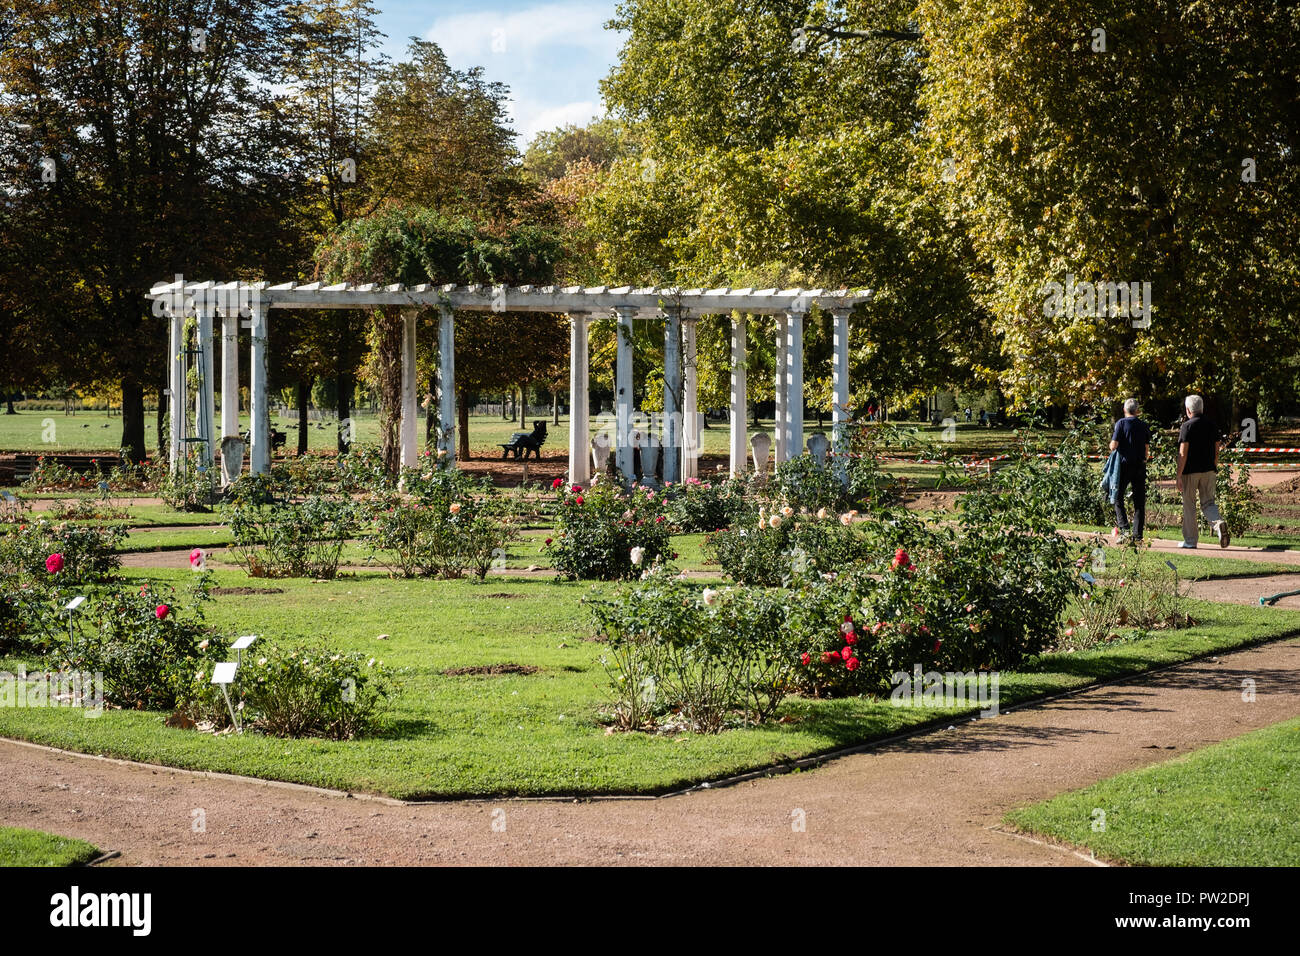 The rose garden of the Tête d'Or park - Stock Image